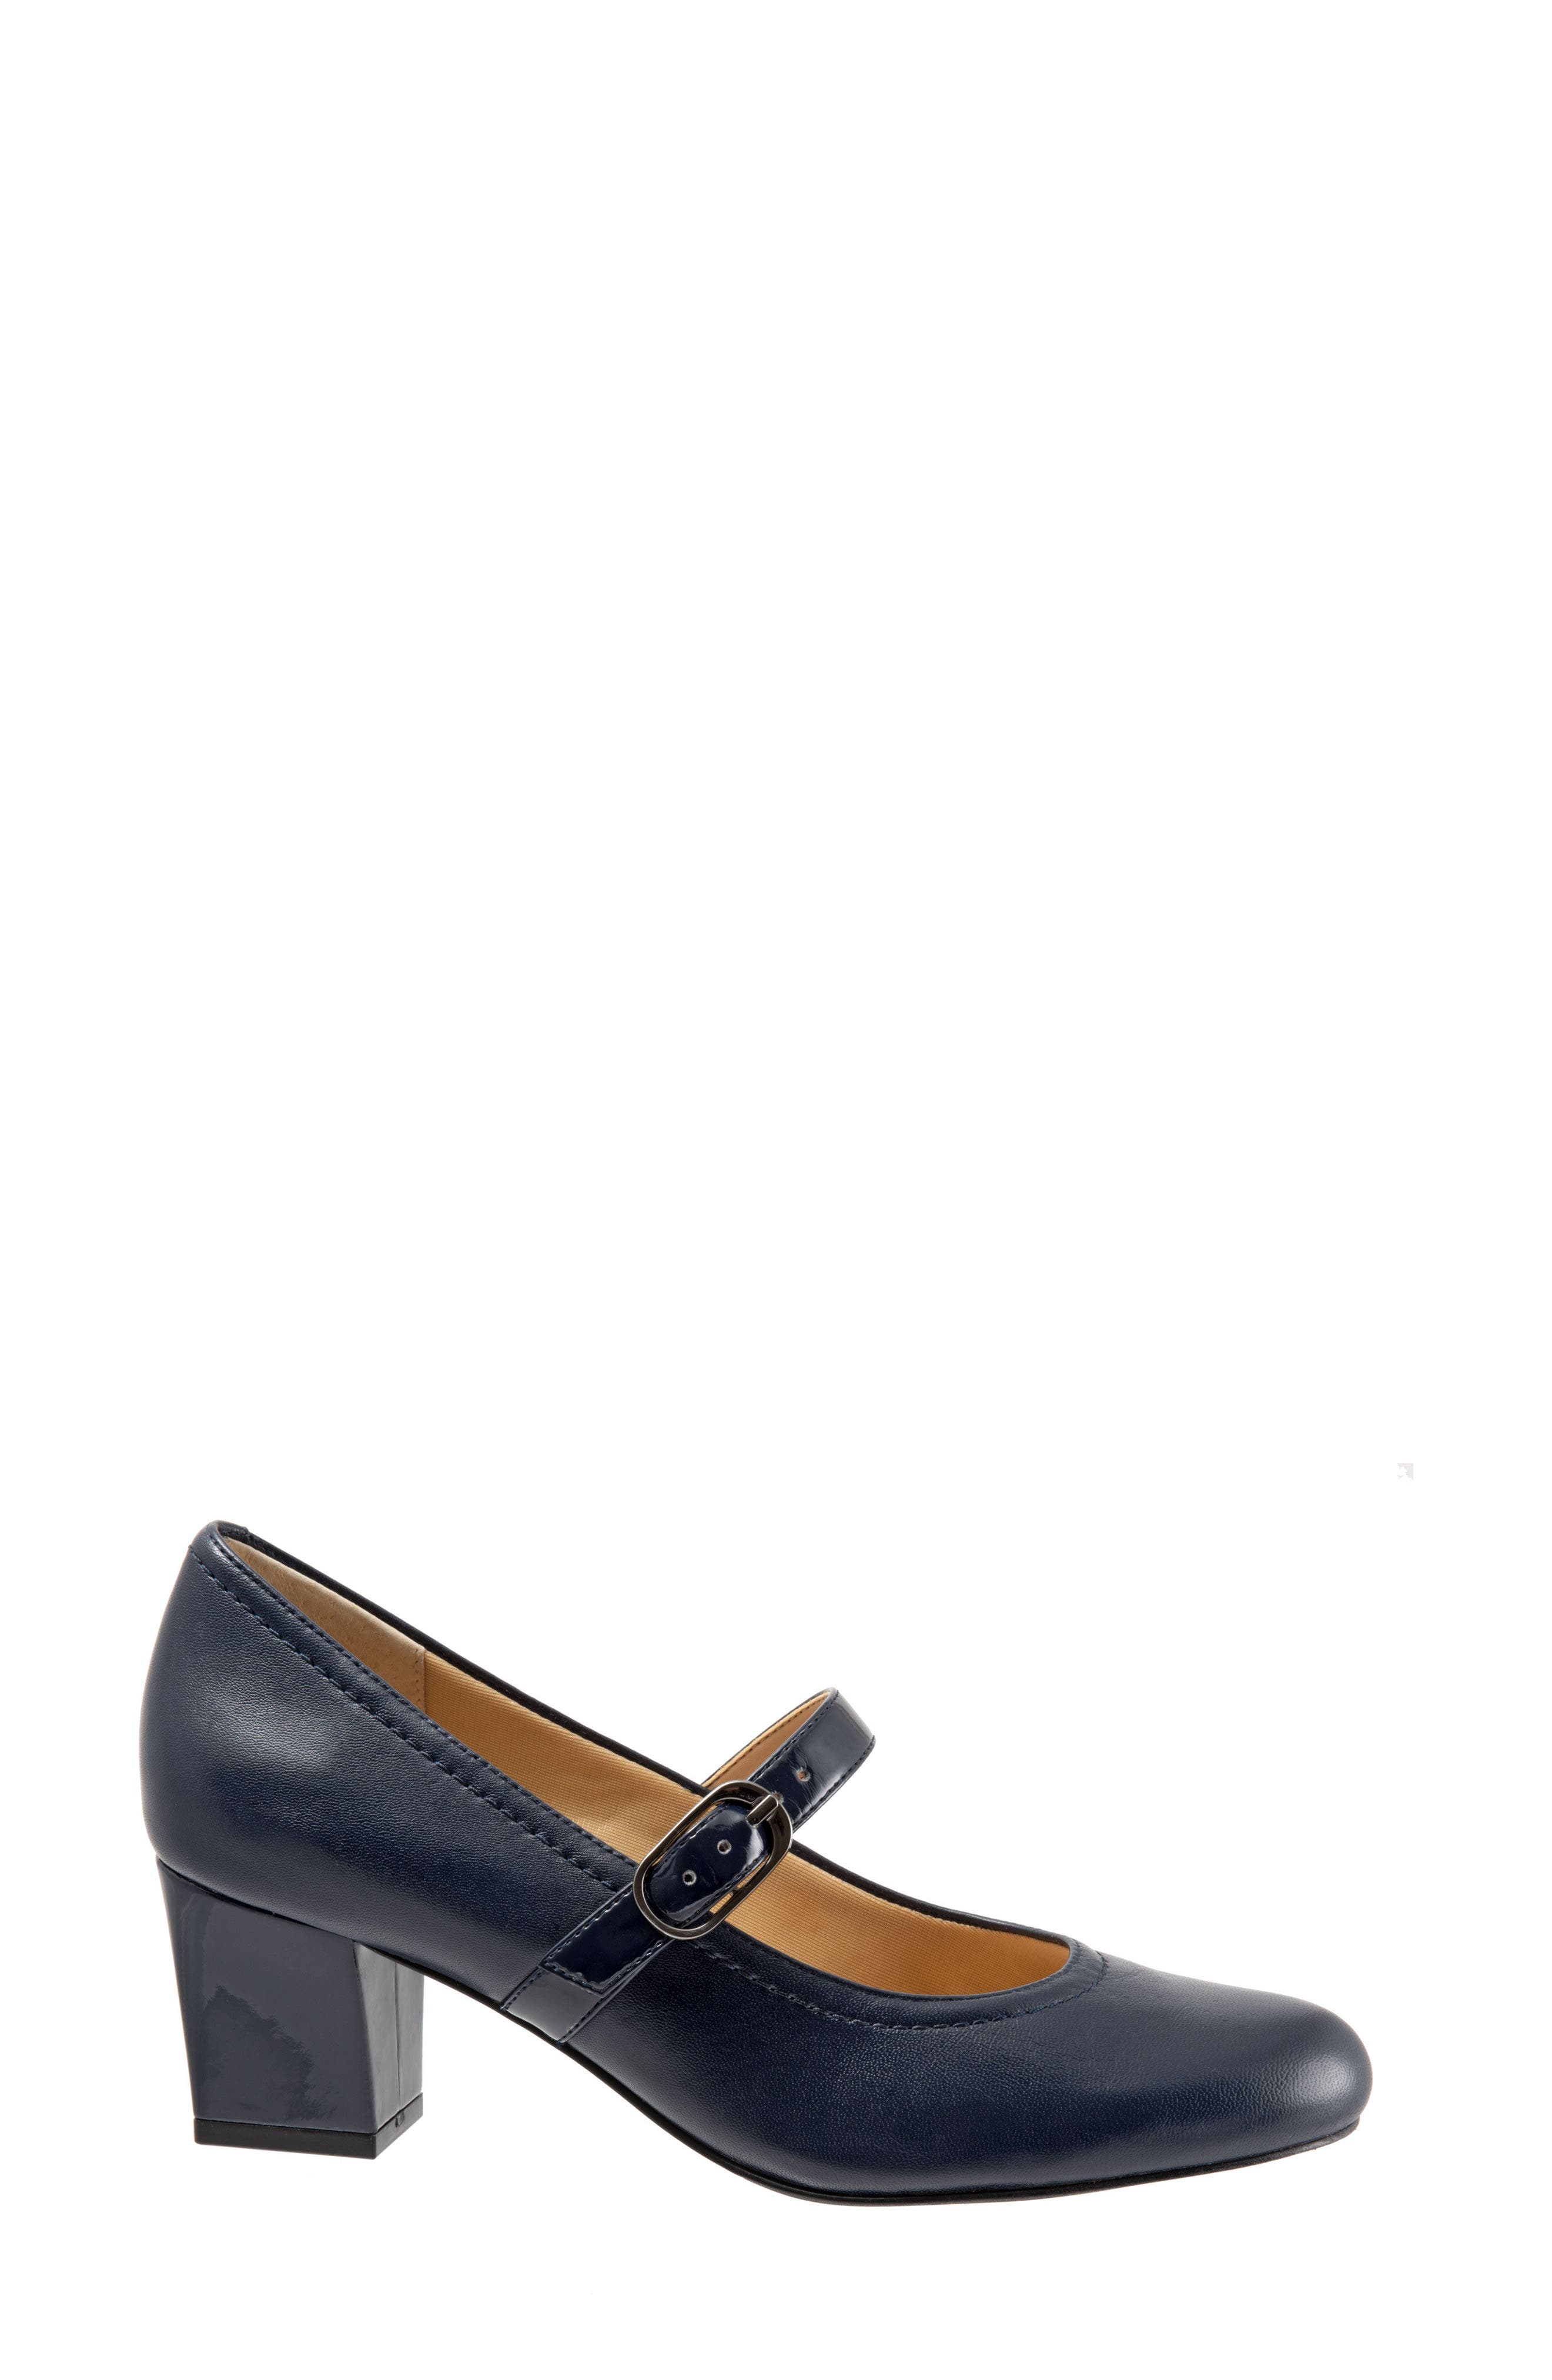 'Candice' Mary Jane Pump,                             Alternate thumbnail 3, color,                             NAVY LEATHER